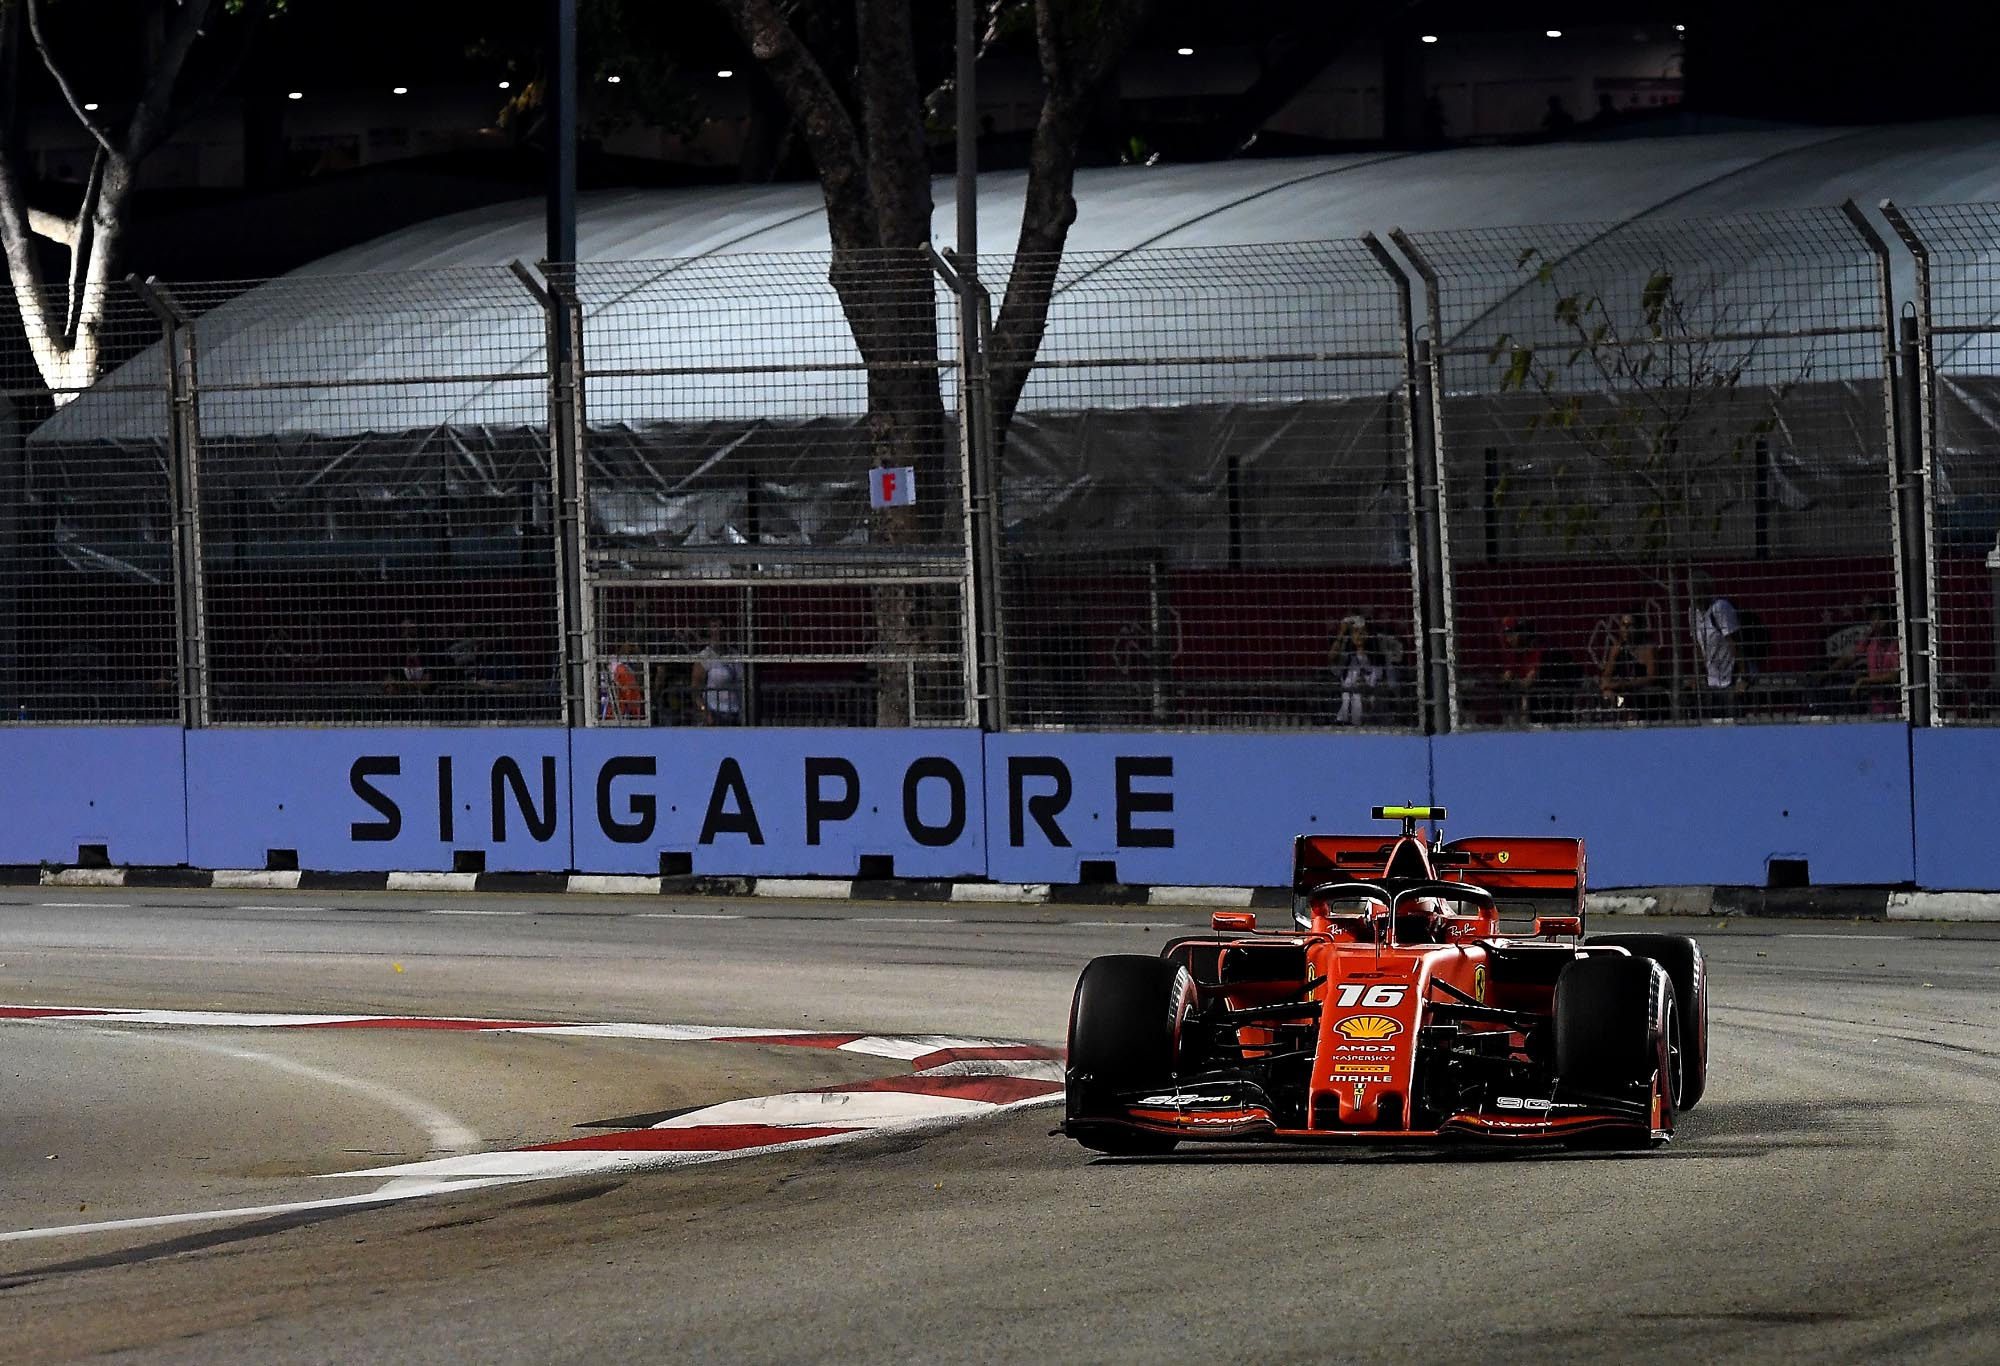 Charles Leclerc on track at the Singapore Grand Prix